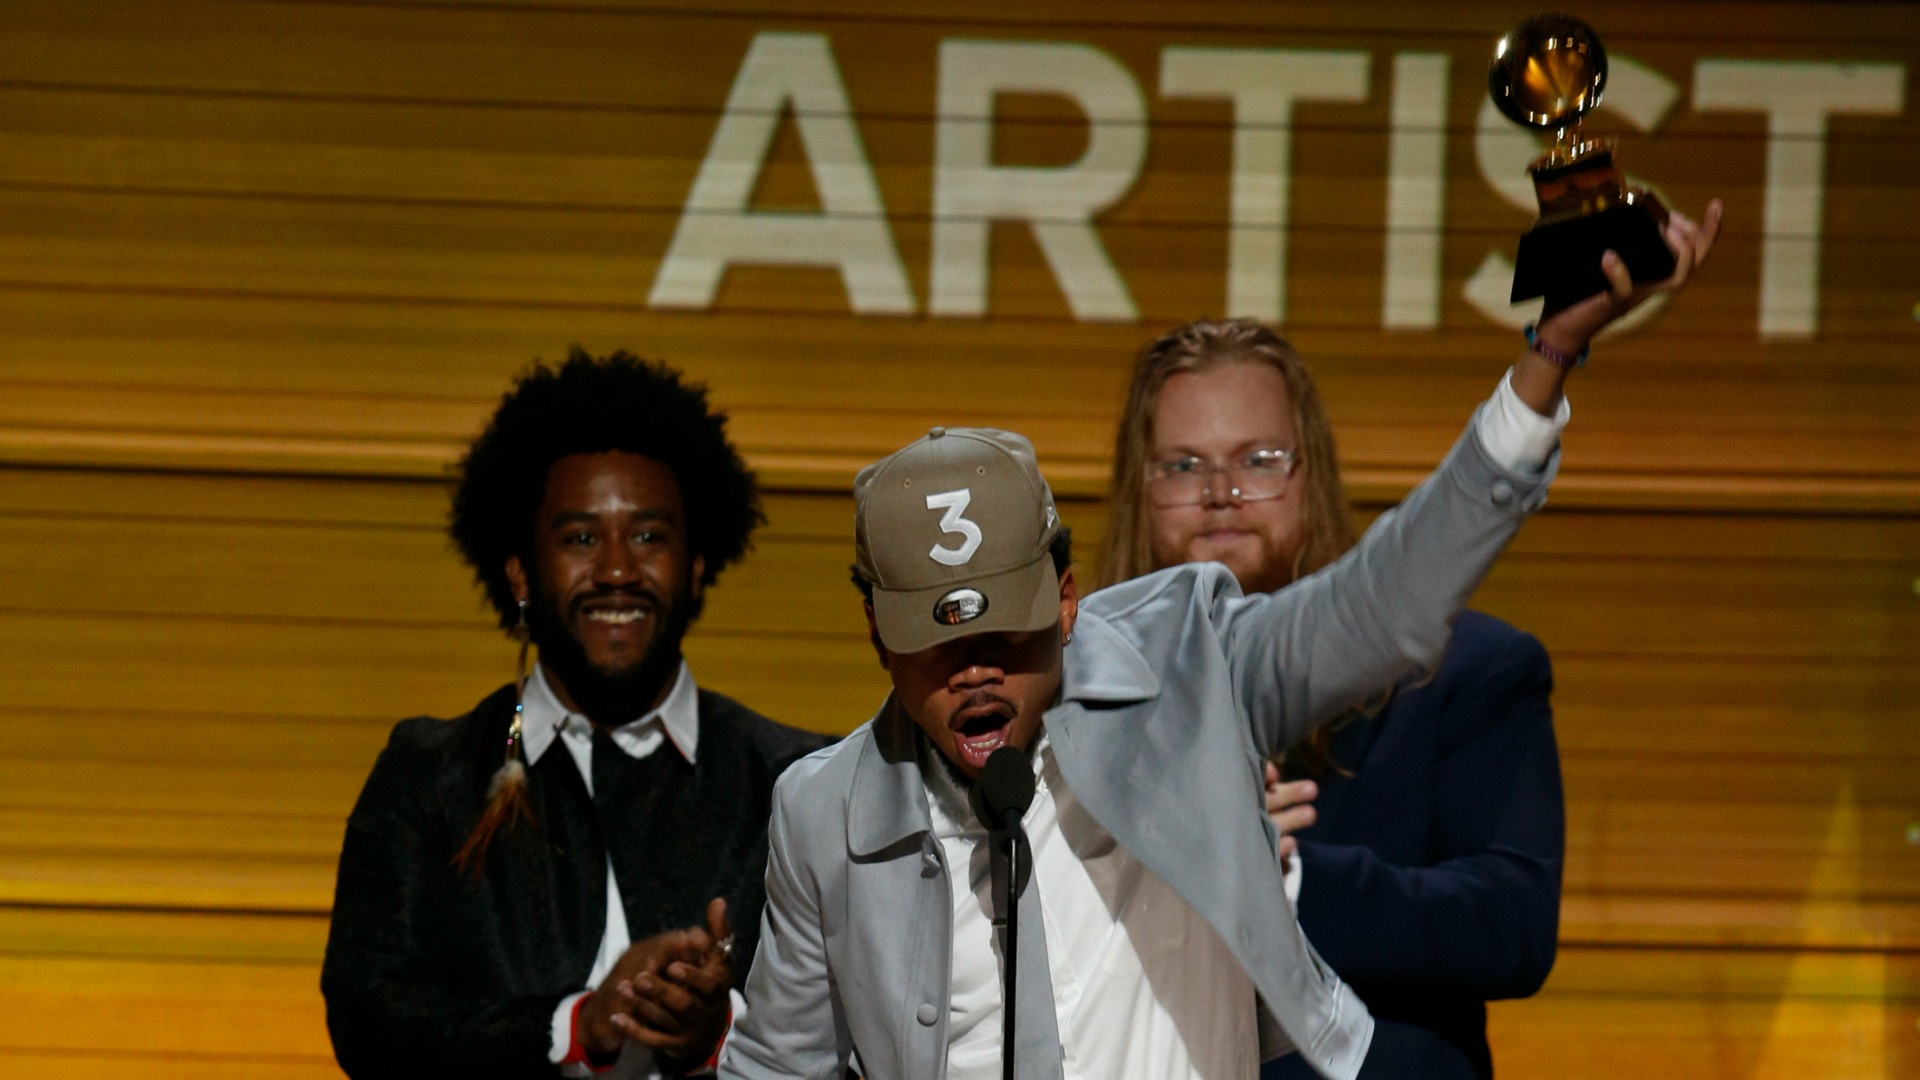 Chance The Rapper wins Best New Artist at the 2017 GRAMMY Awards